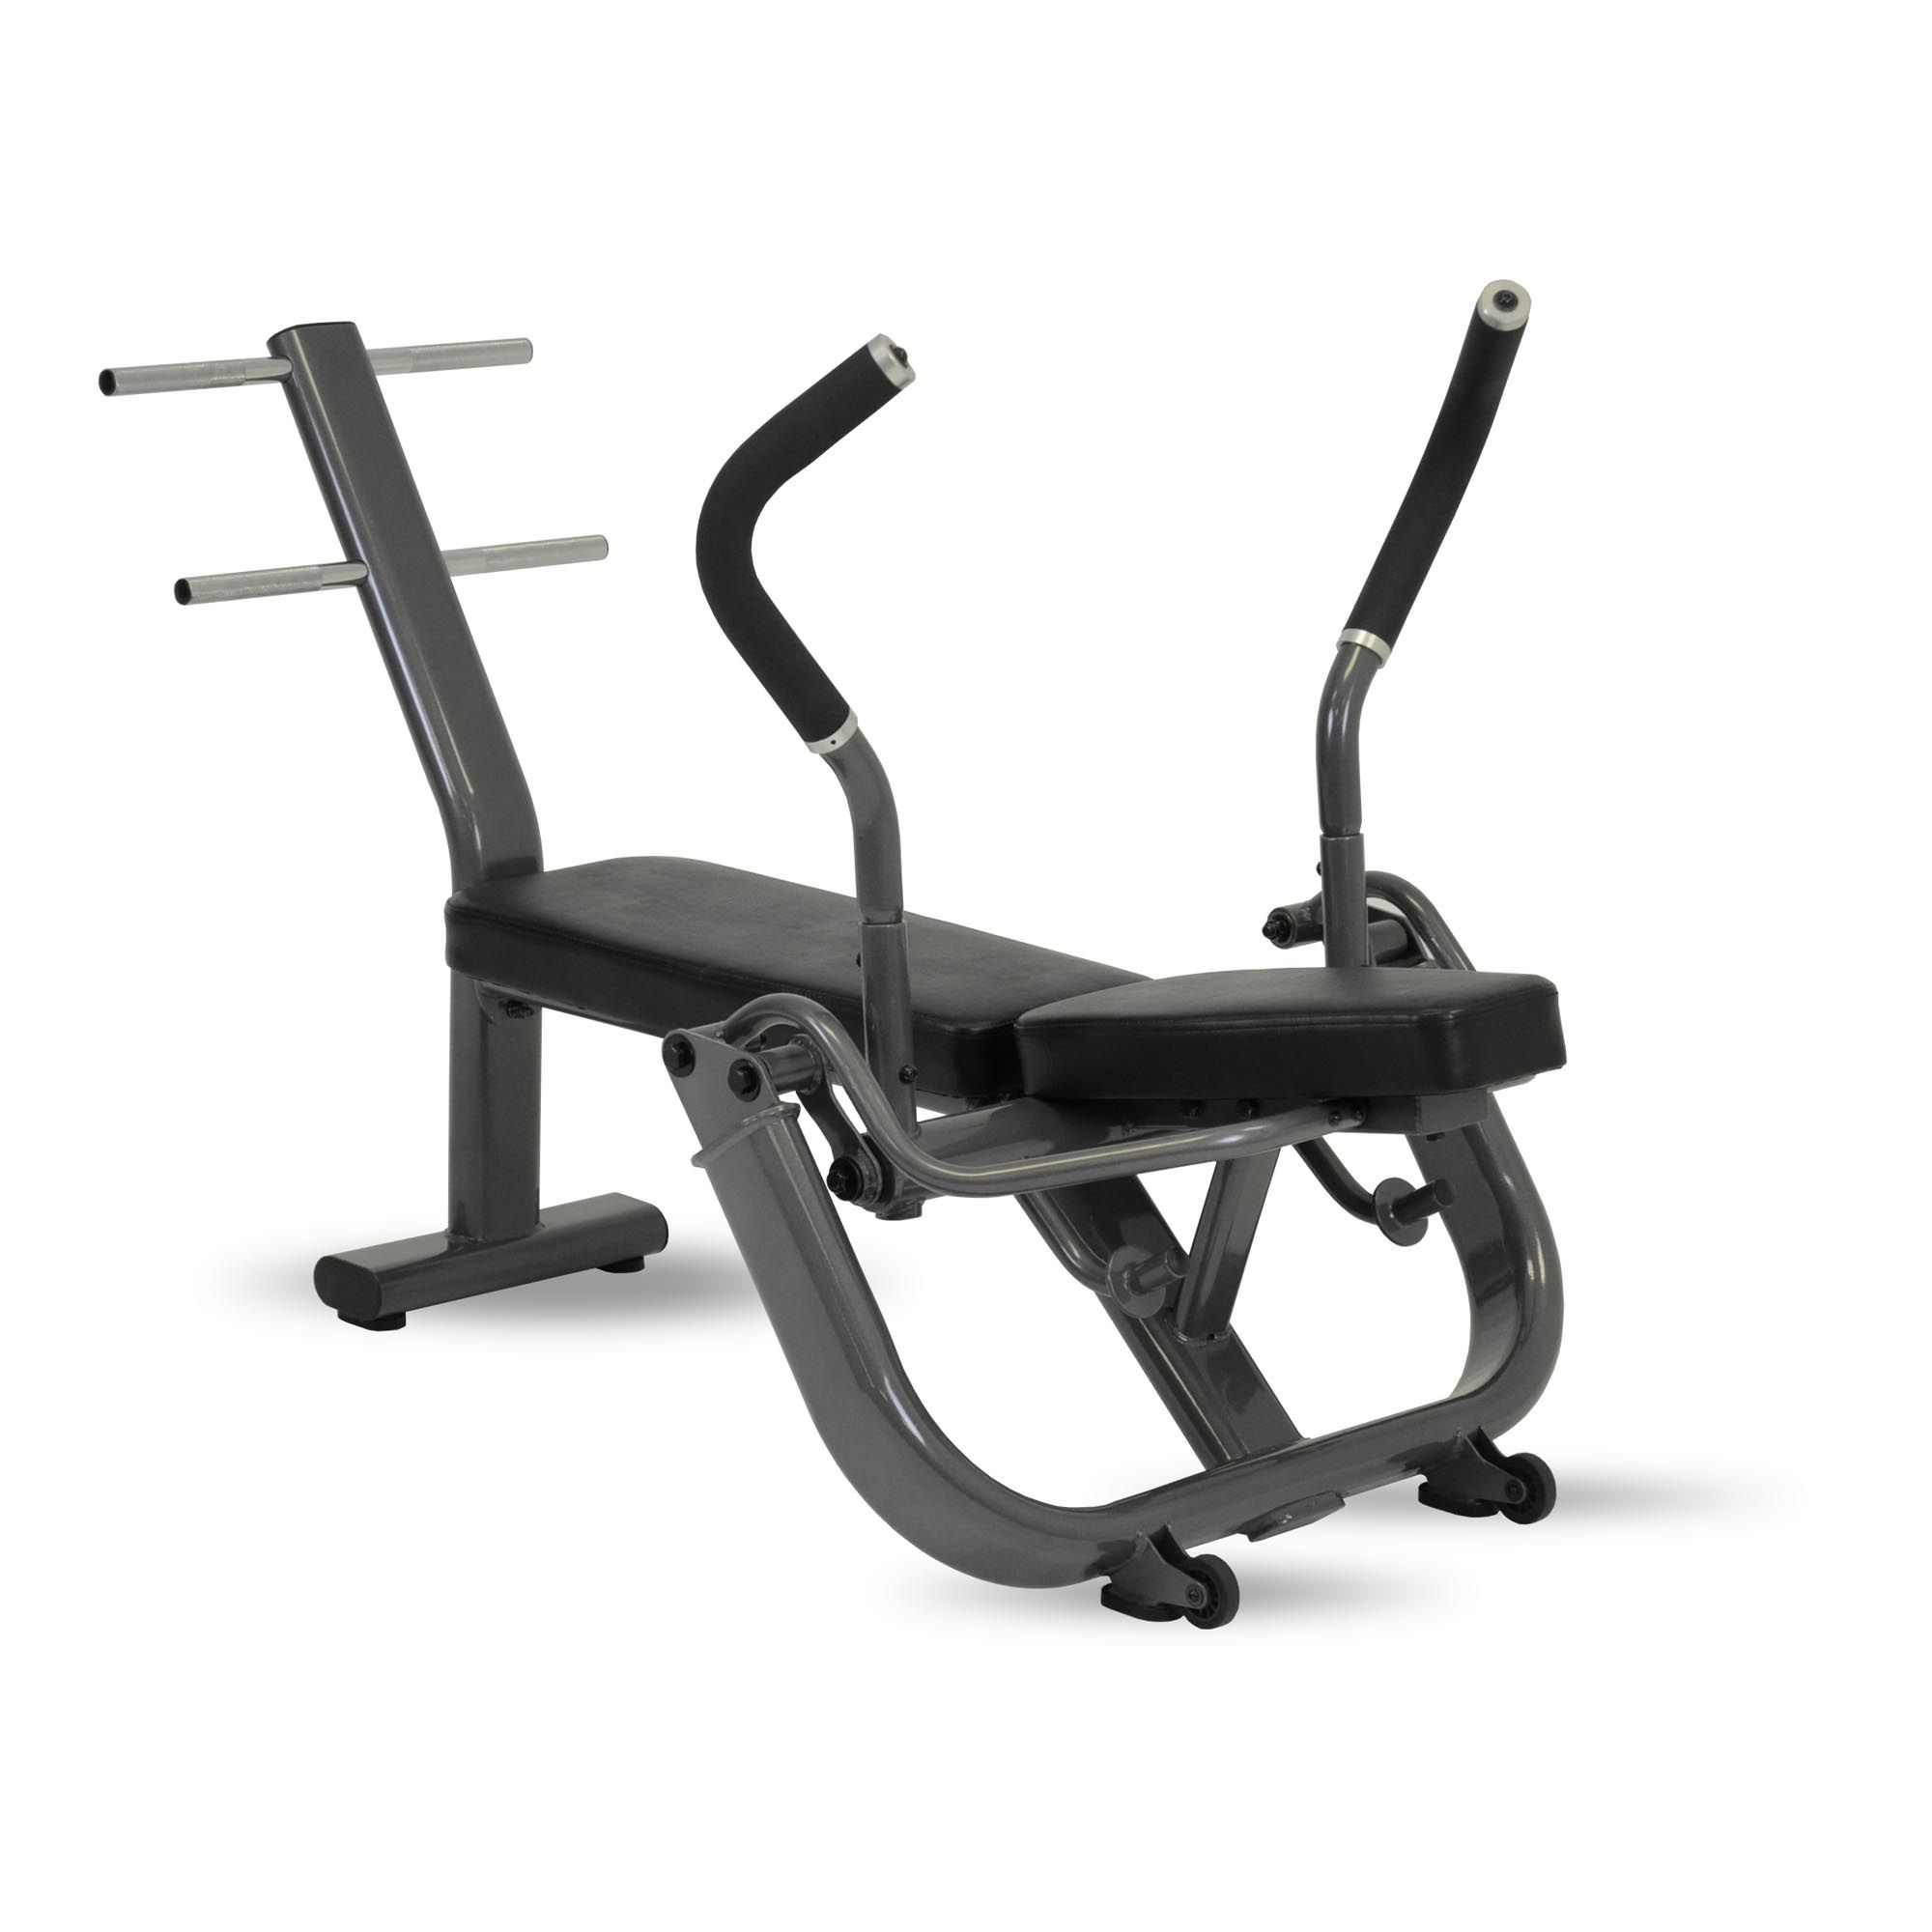 Inspire fitness abdominal bench Abs bench